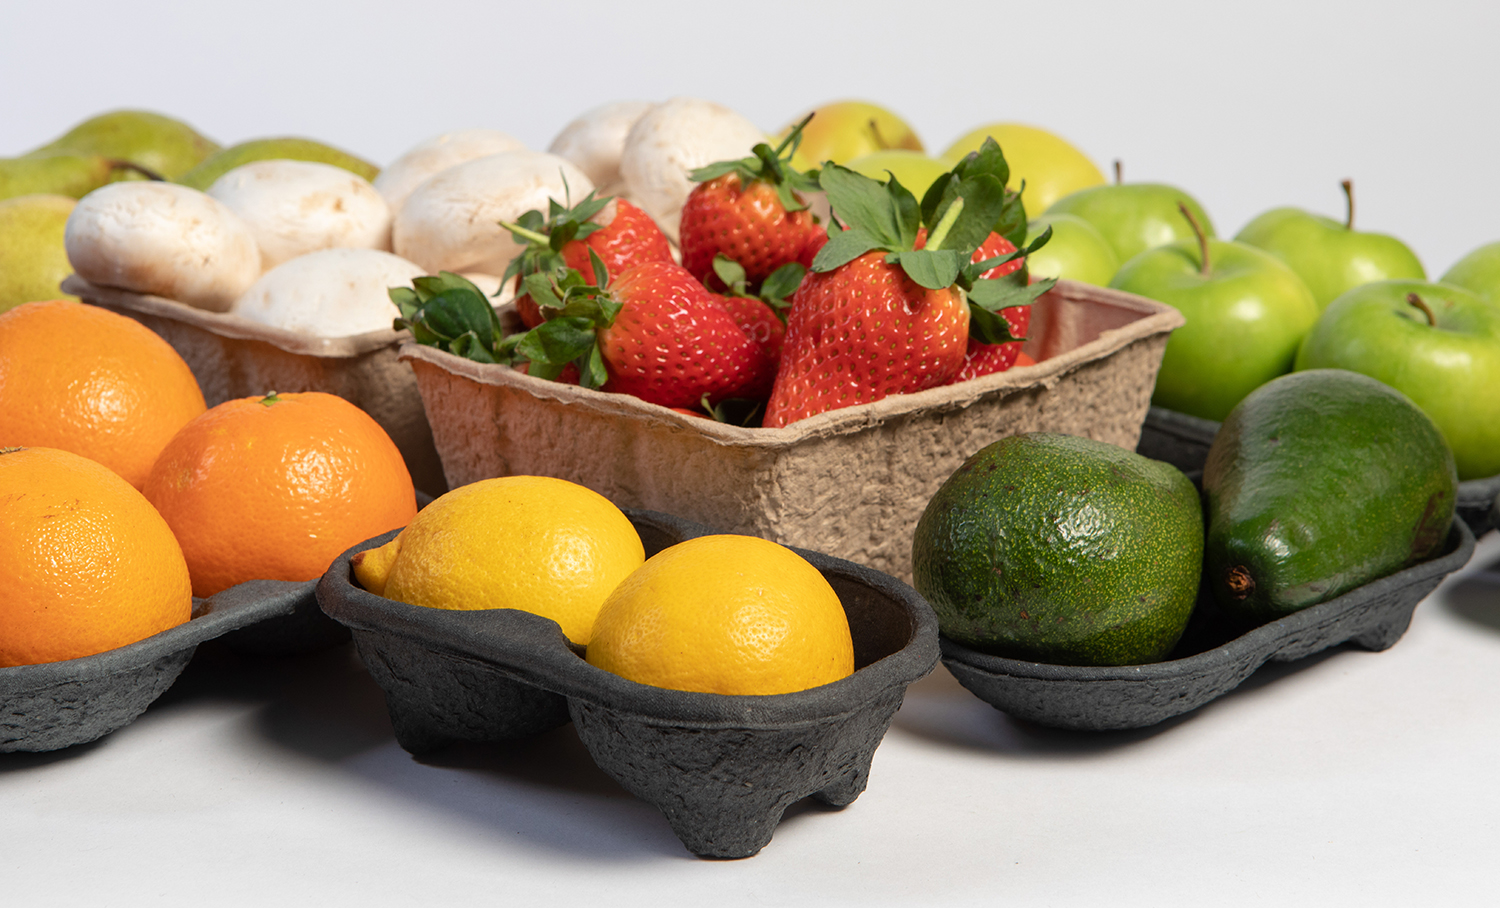 Produce Tray Brochure Image